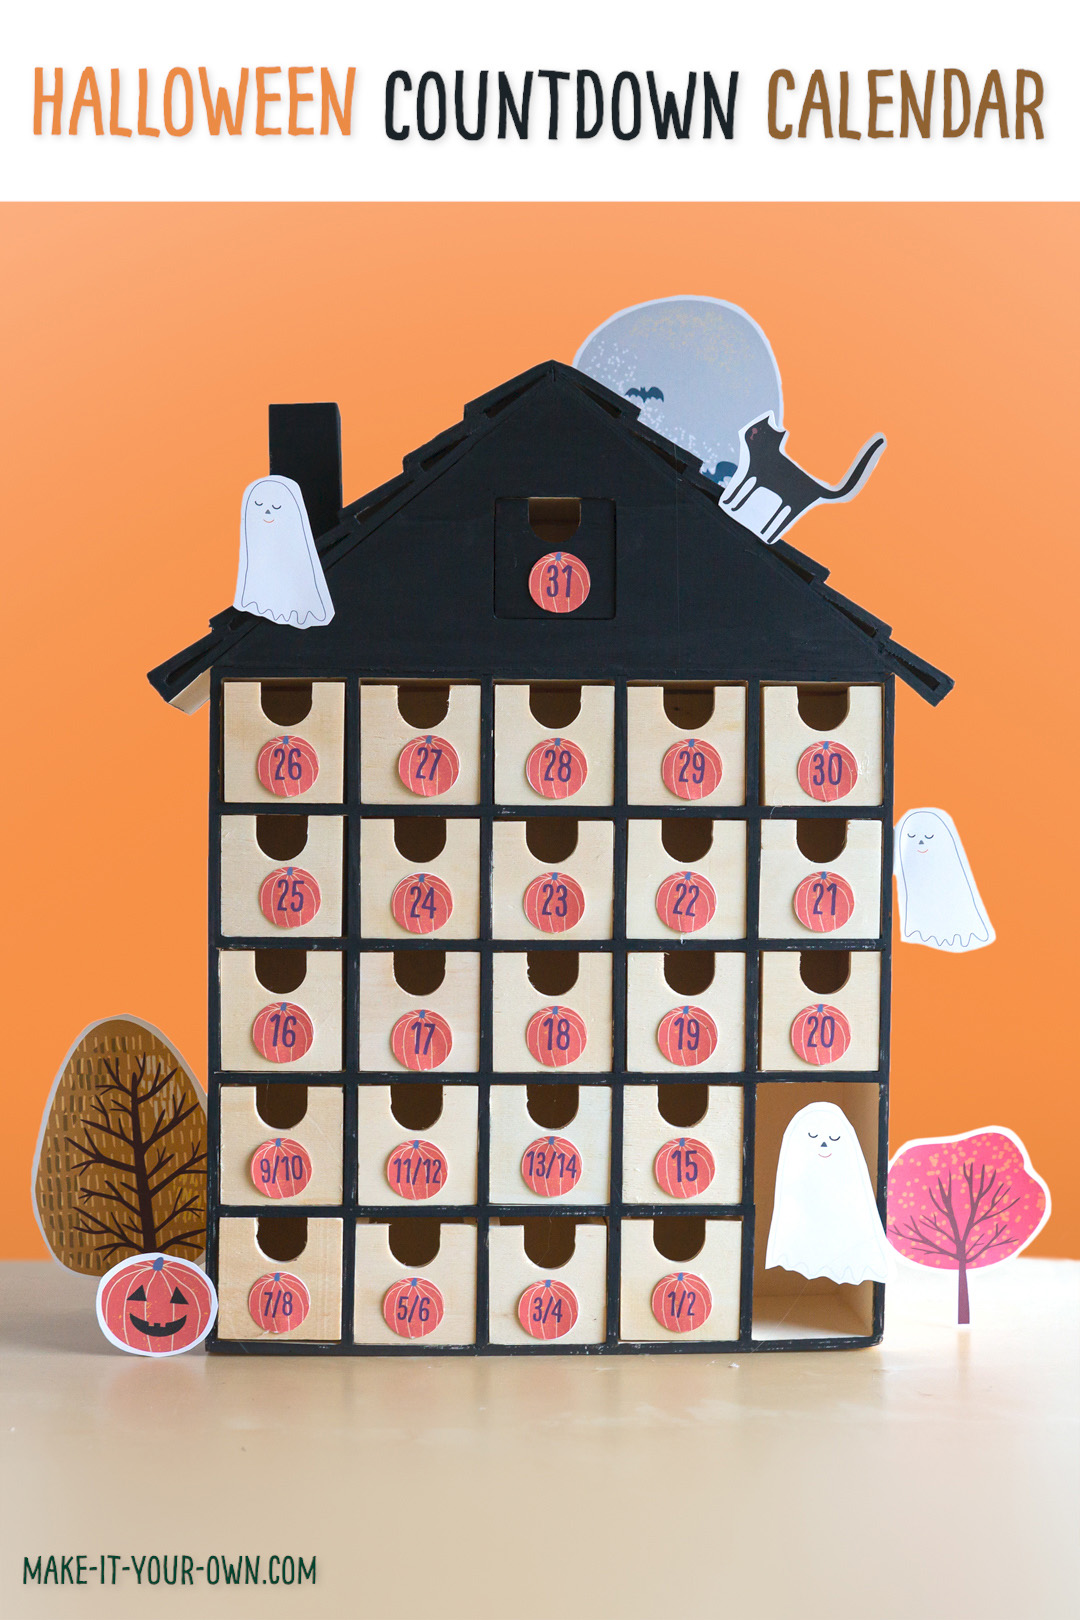 Halloween Countdown House:  Use the free printables to transform this advent calendar into a Haunted House Halloween countdown for kids!  This makes a fun craft to do together and a trick-or-treat alternative!